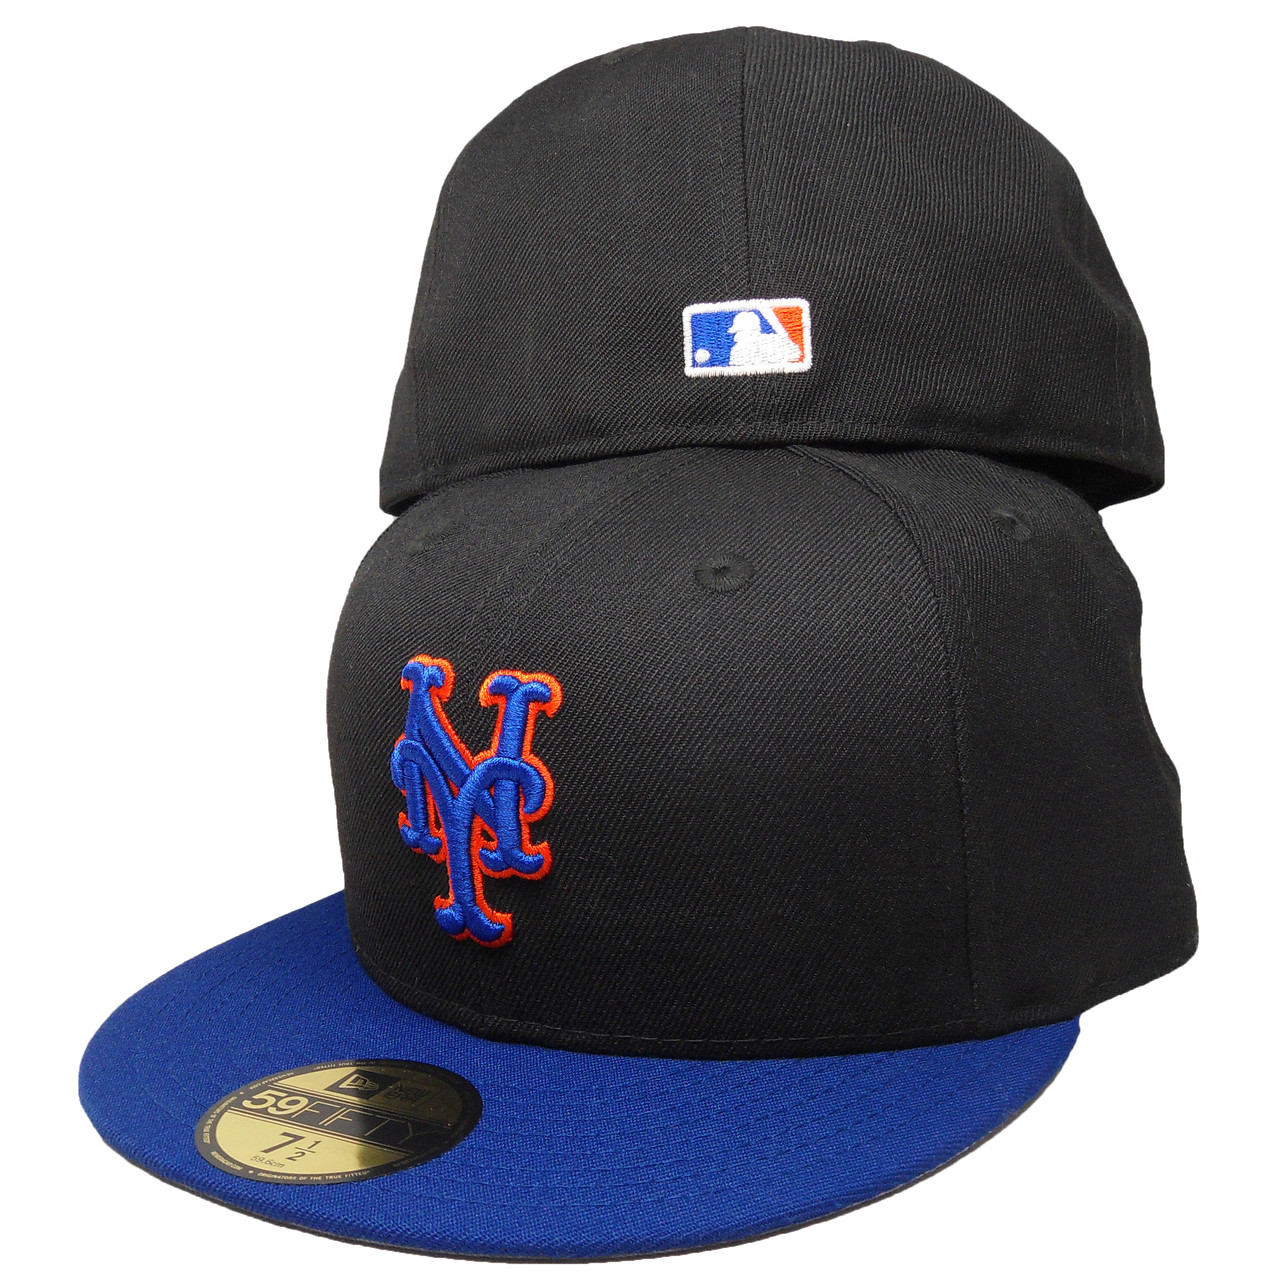 New York Mets Custom New Era 59Fifty Fitted Hat - Black 35bca09fa8a